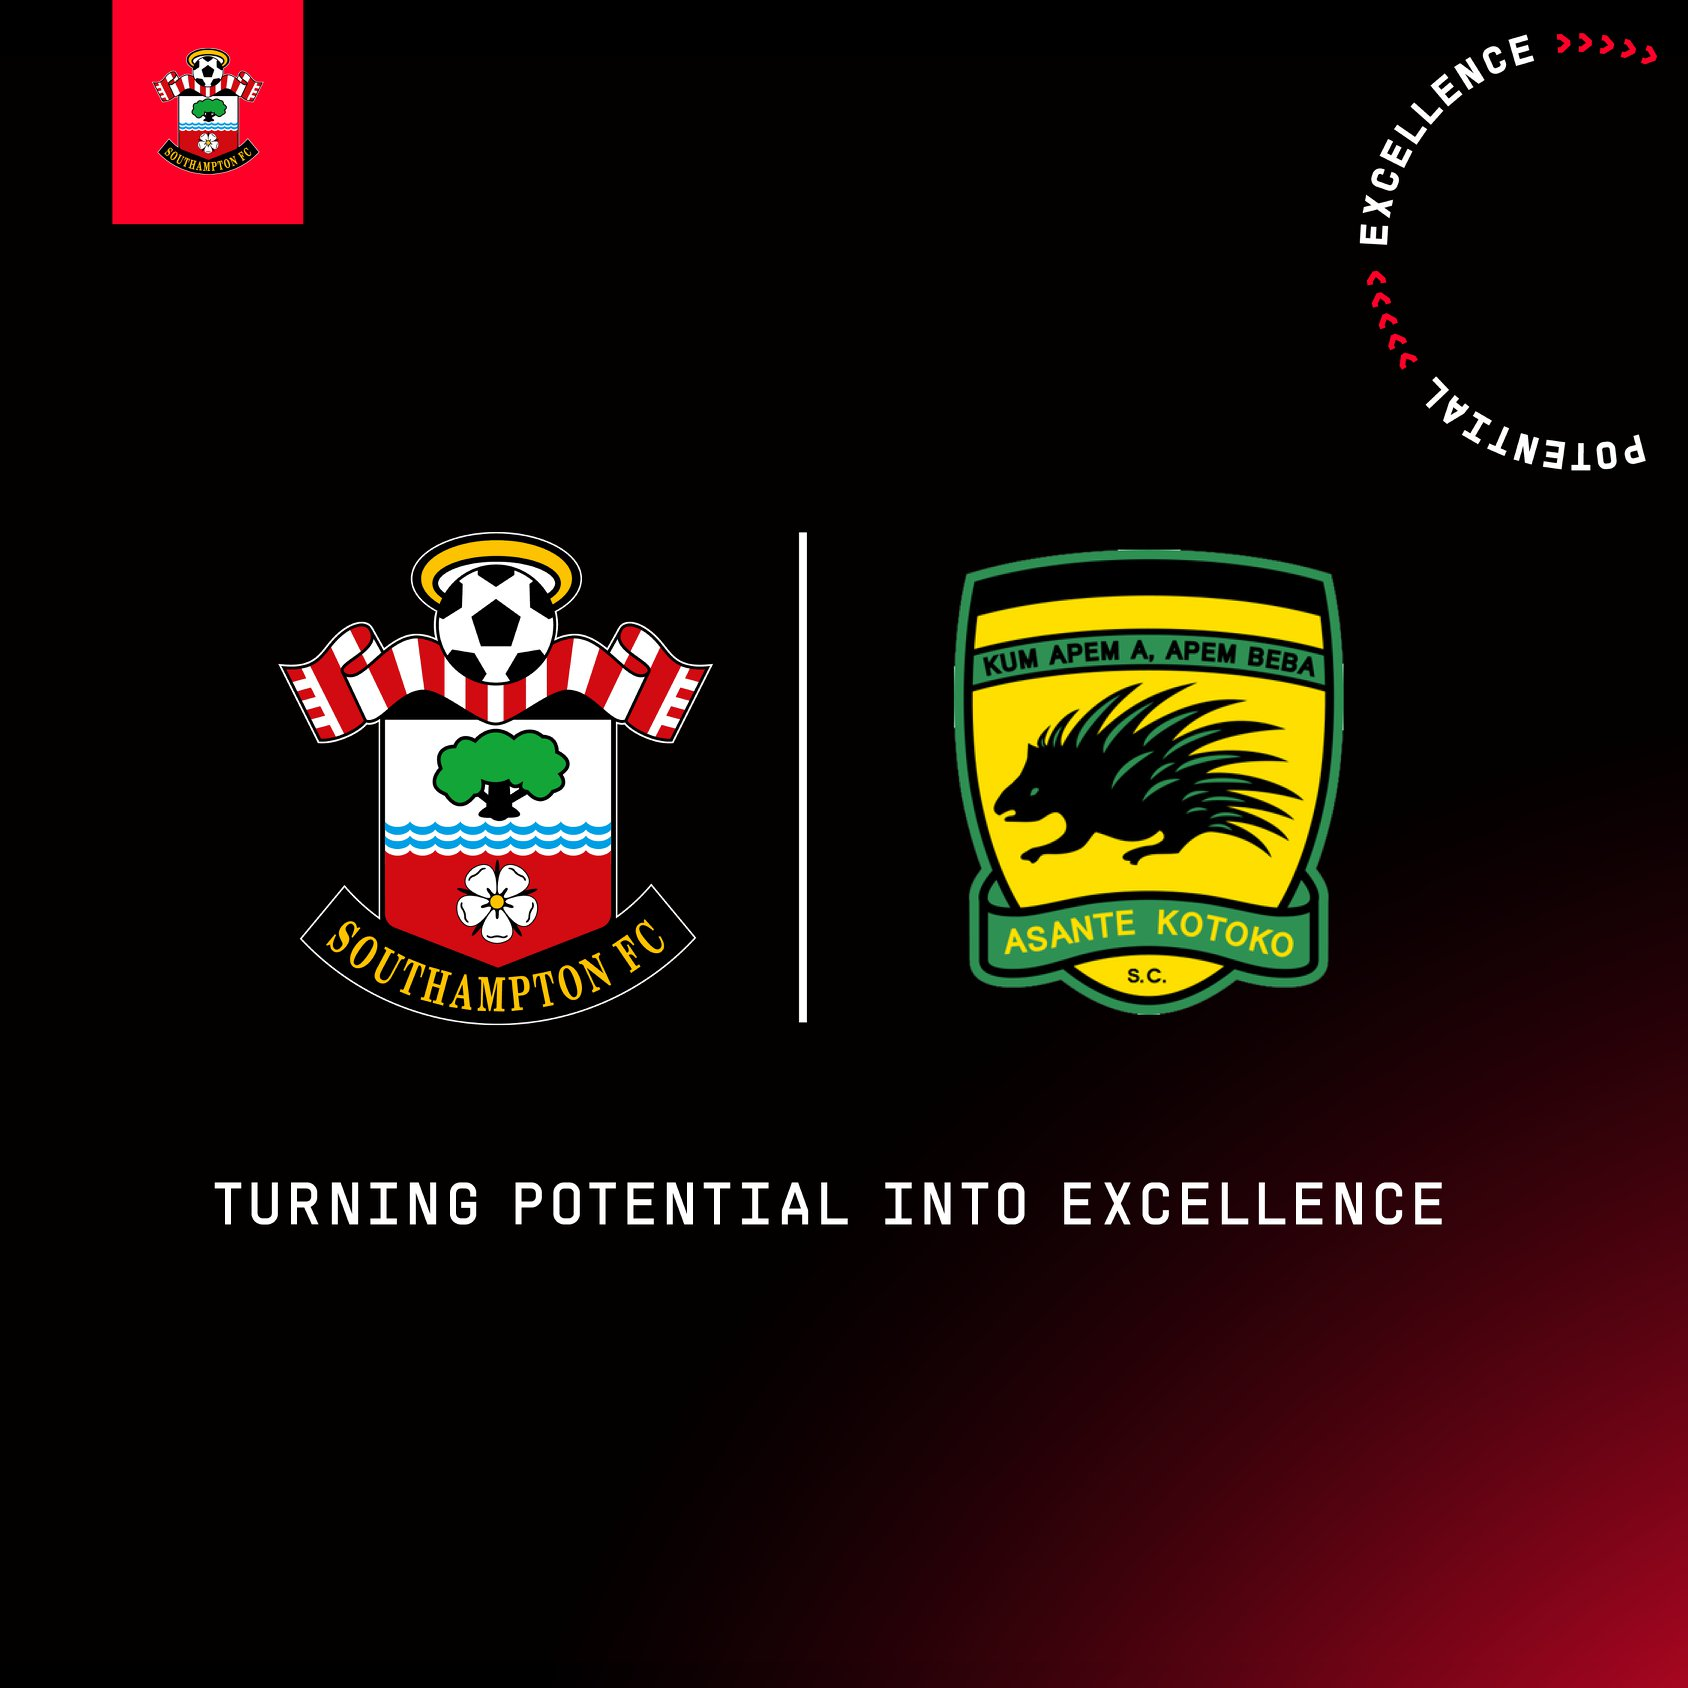 Ghana's Kotoko agrees partnership with Southampton FC